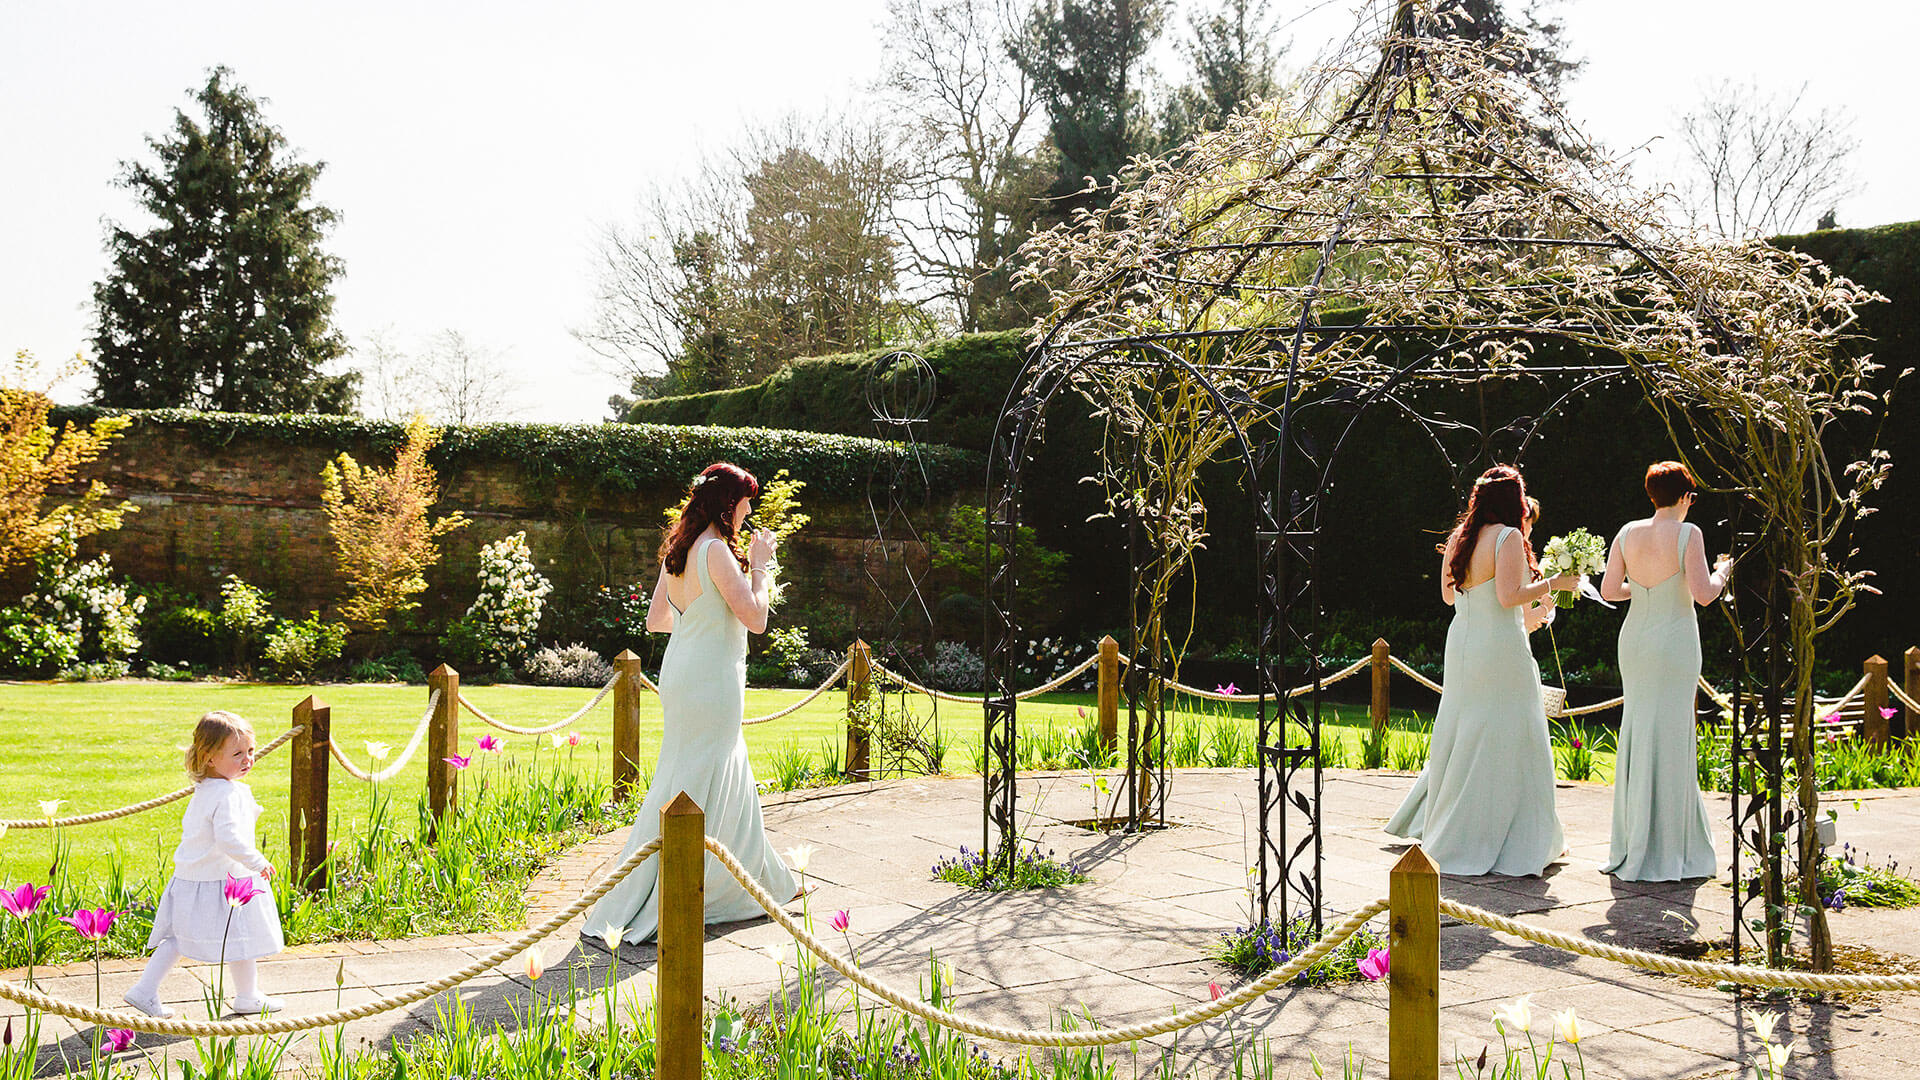 A bride and her bridesmaids make their way to the wedding reception through the romantic Walled Garden